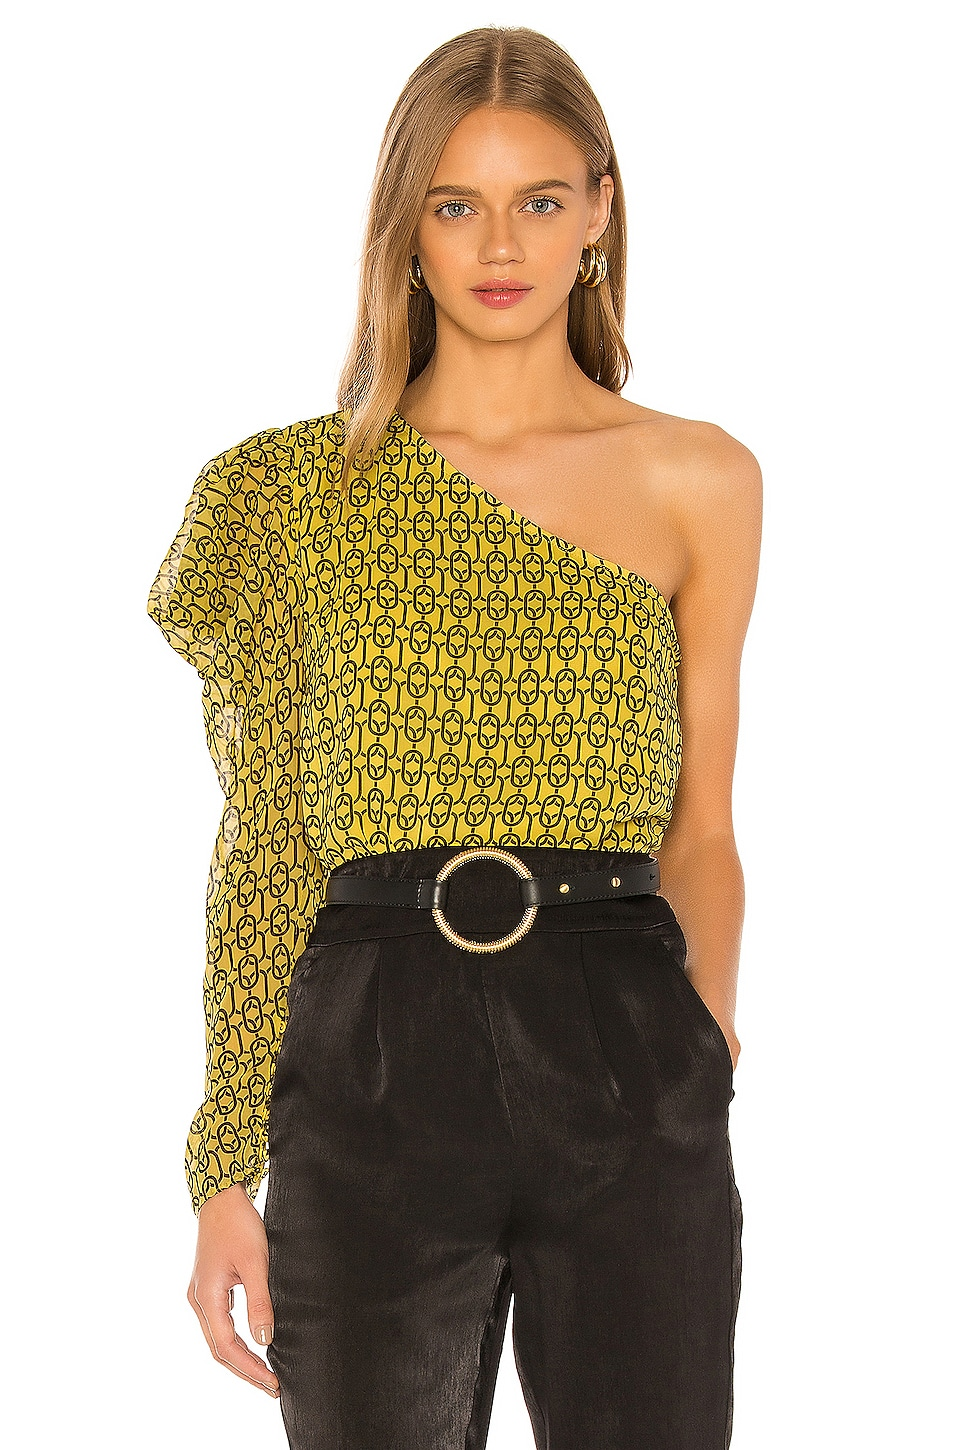 L'Academie The Morgane Top in Gold Chain